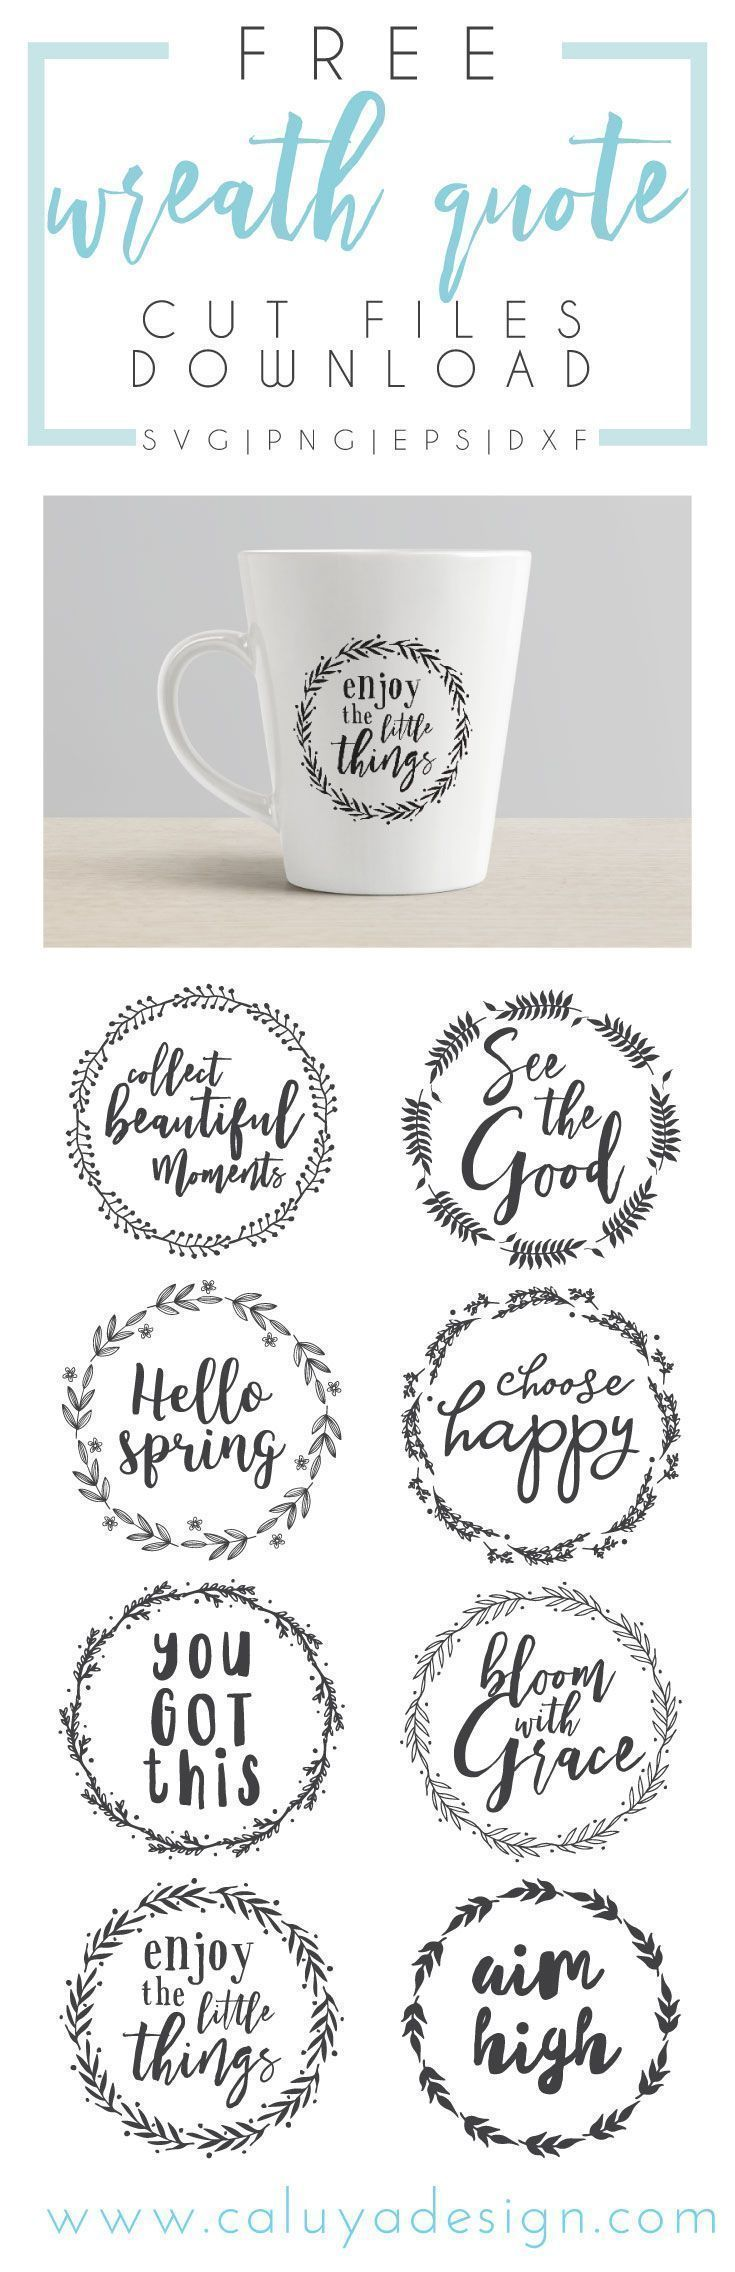 FREE Wreath Quote SVG, PNG, DXF, EPS Downloads by C. Caluya